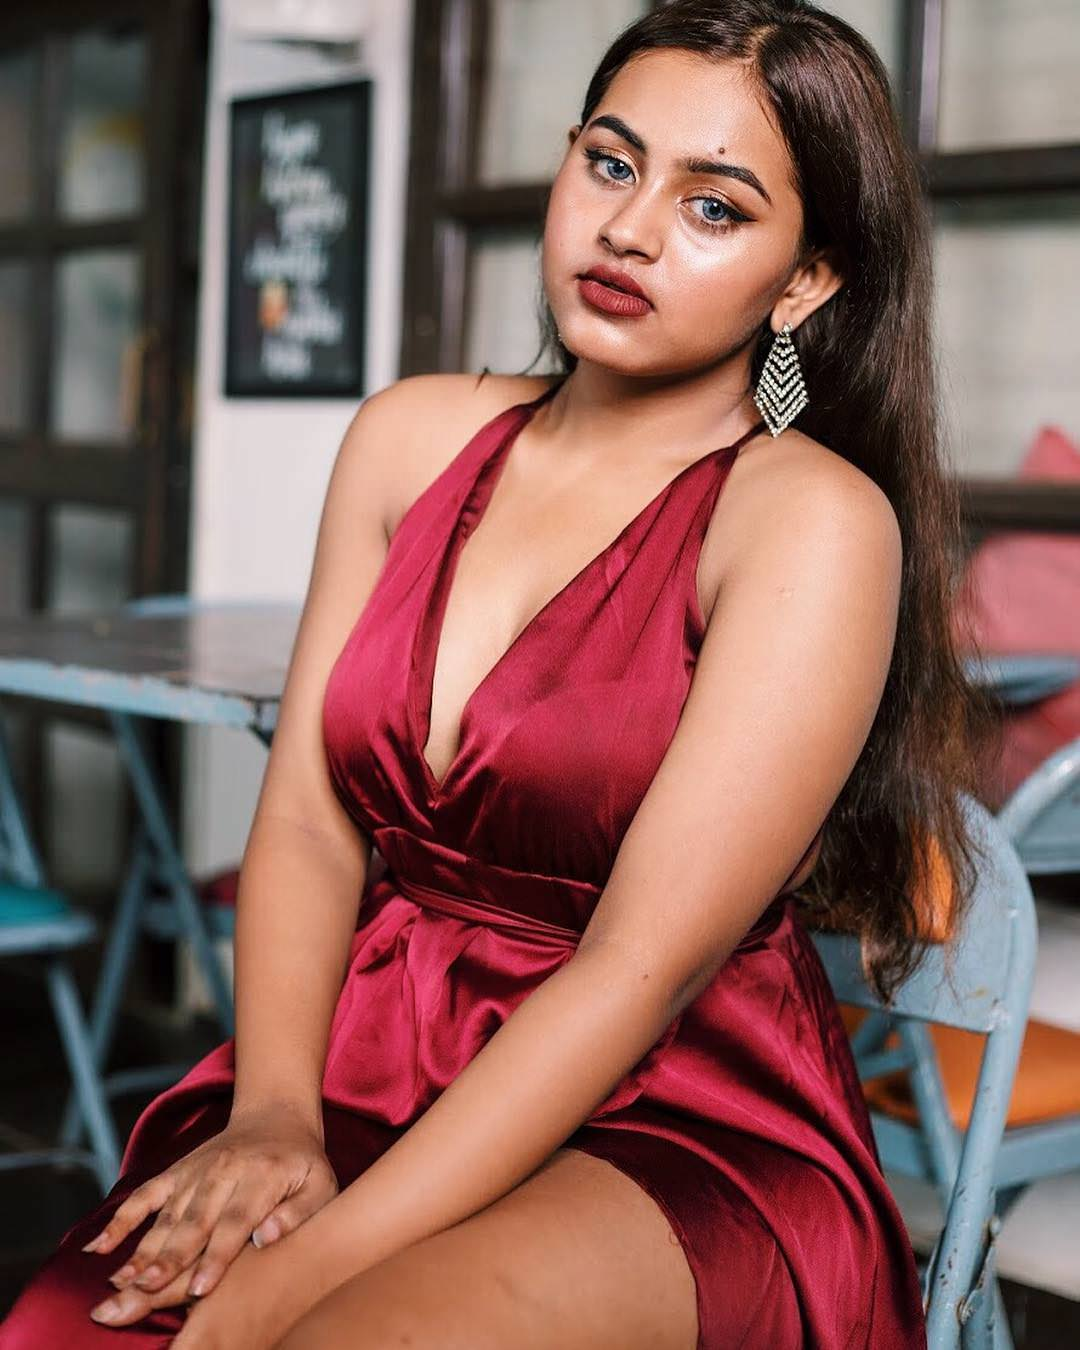 Cherith Philip - Plus Size Model from Mumbai   Indian Girls Villa - Celebs Beauty, Fashion and Entertainment